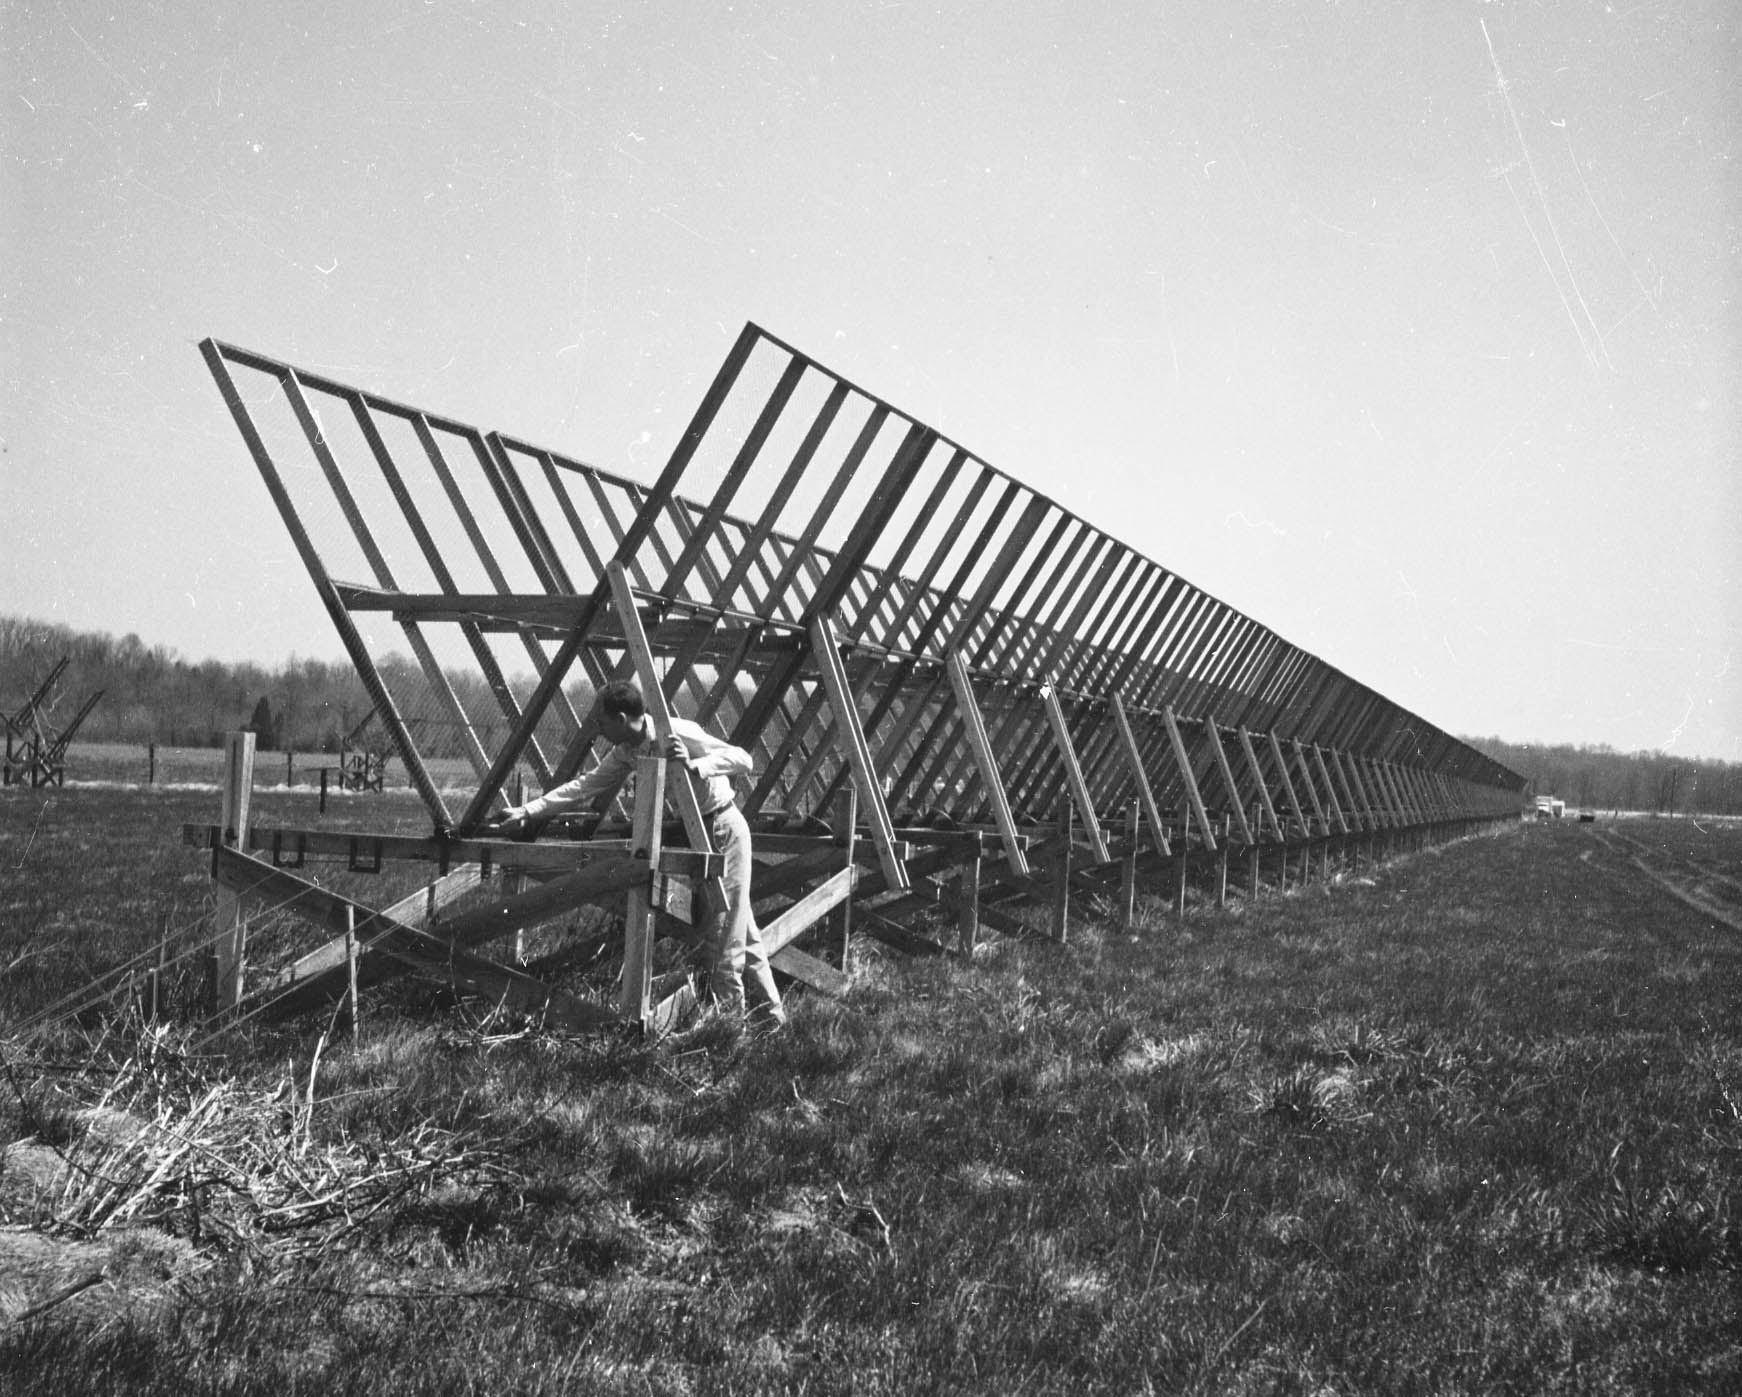 John W. Firor working on the Precise Position Apparatus, one of several radio telescopes built at DTM's River Road site, ca. 1959.